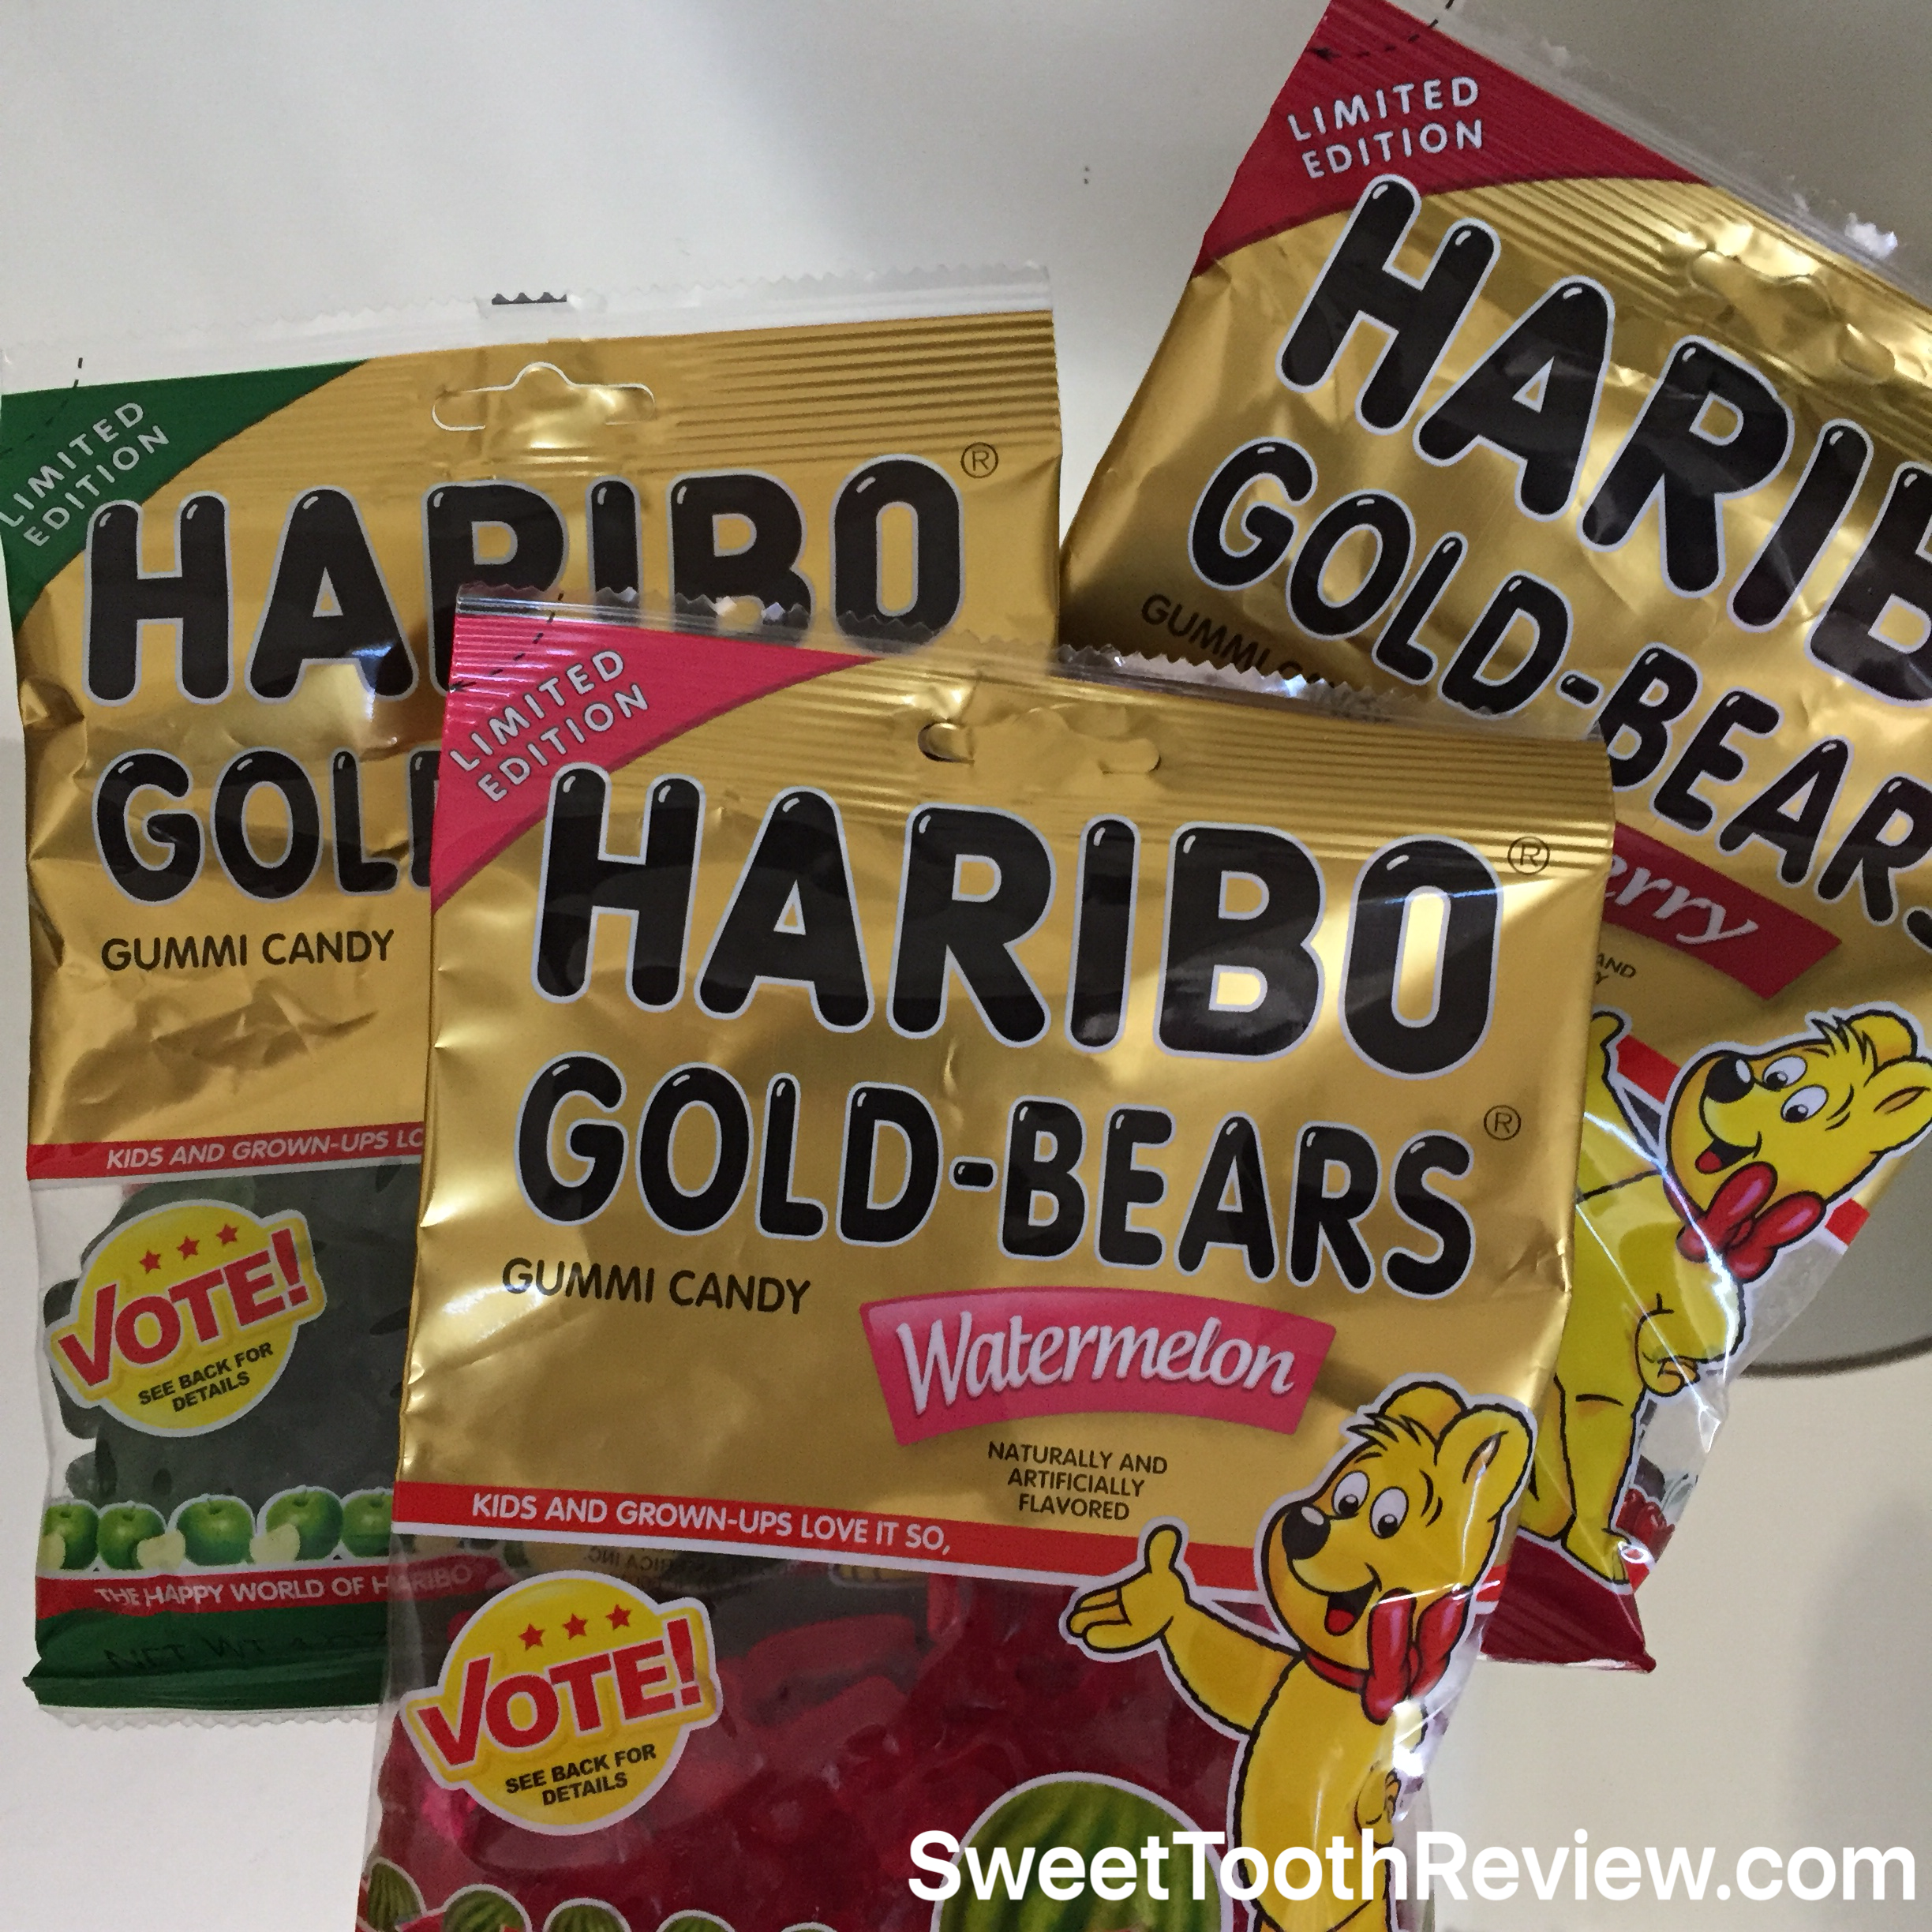 Haribo gummy bears are just one of many products that thomas - New Haribo Gold Bears Gummy Bear Flavors